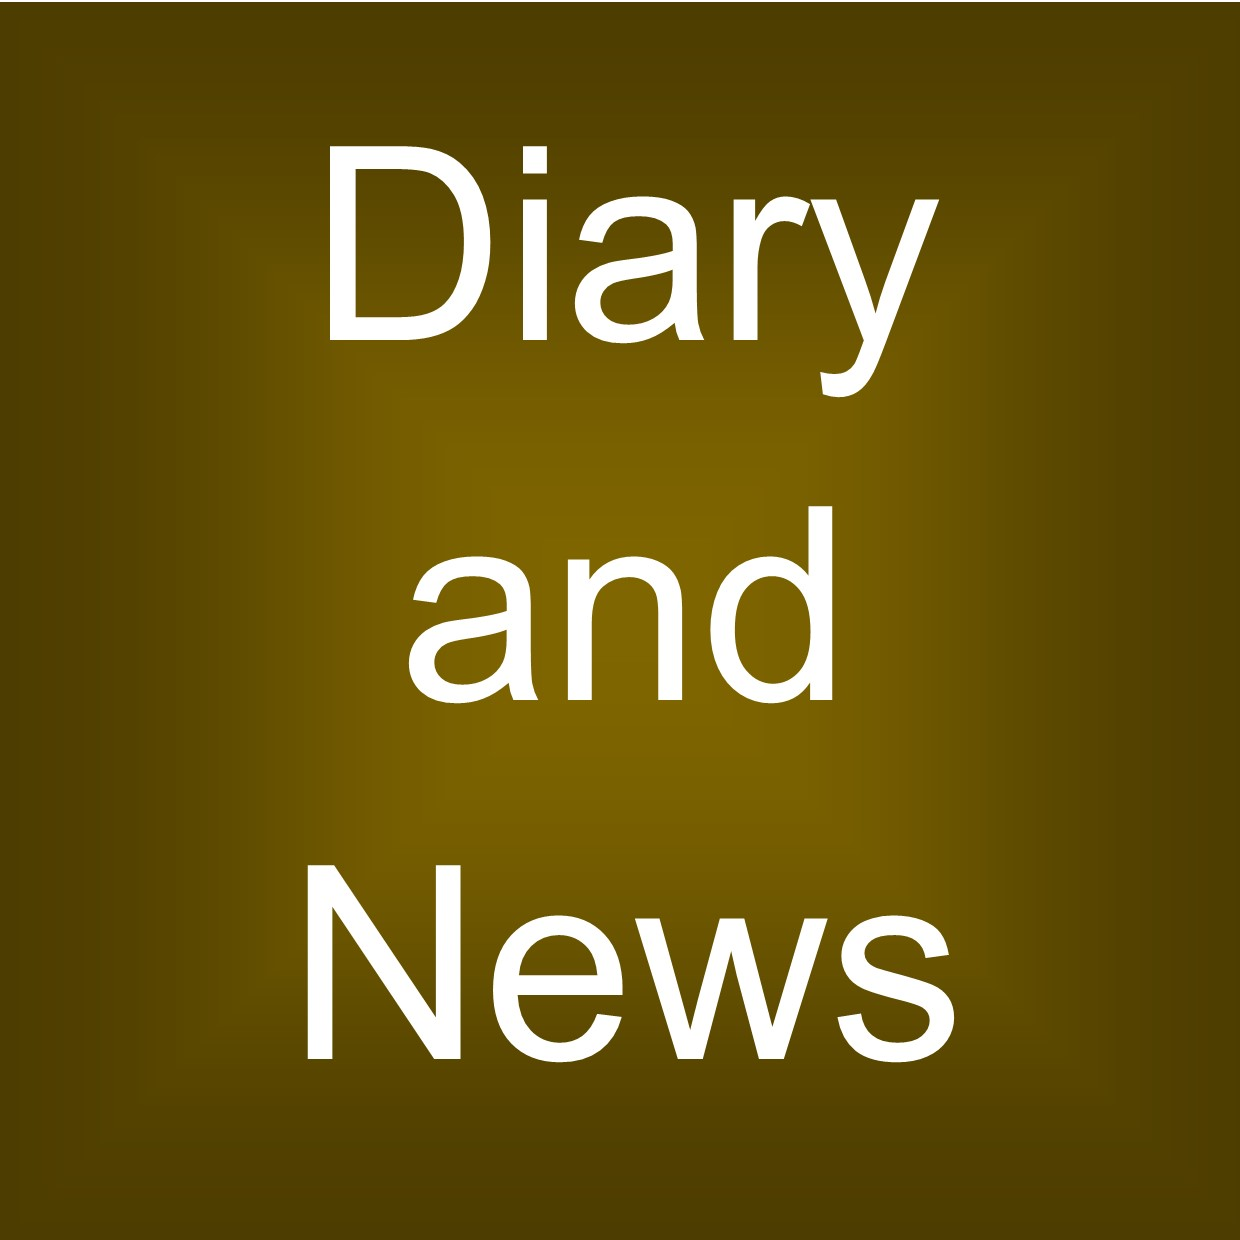 Diary and News